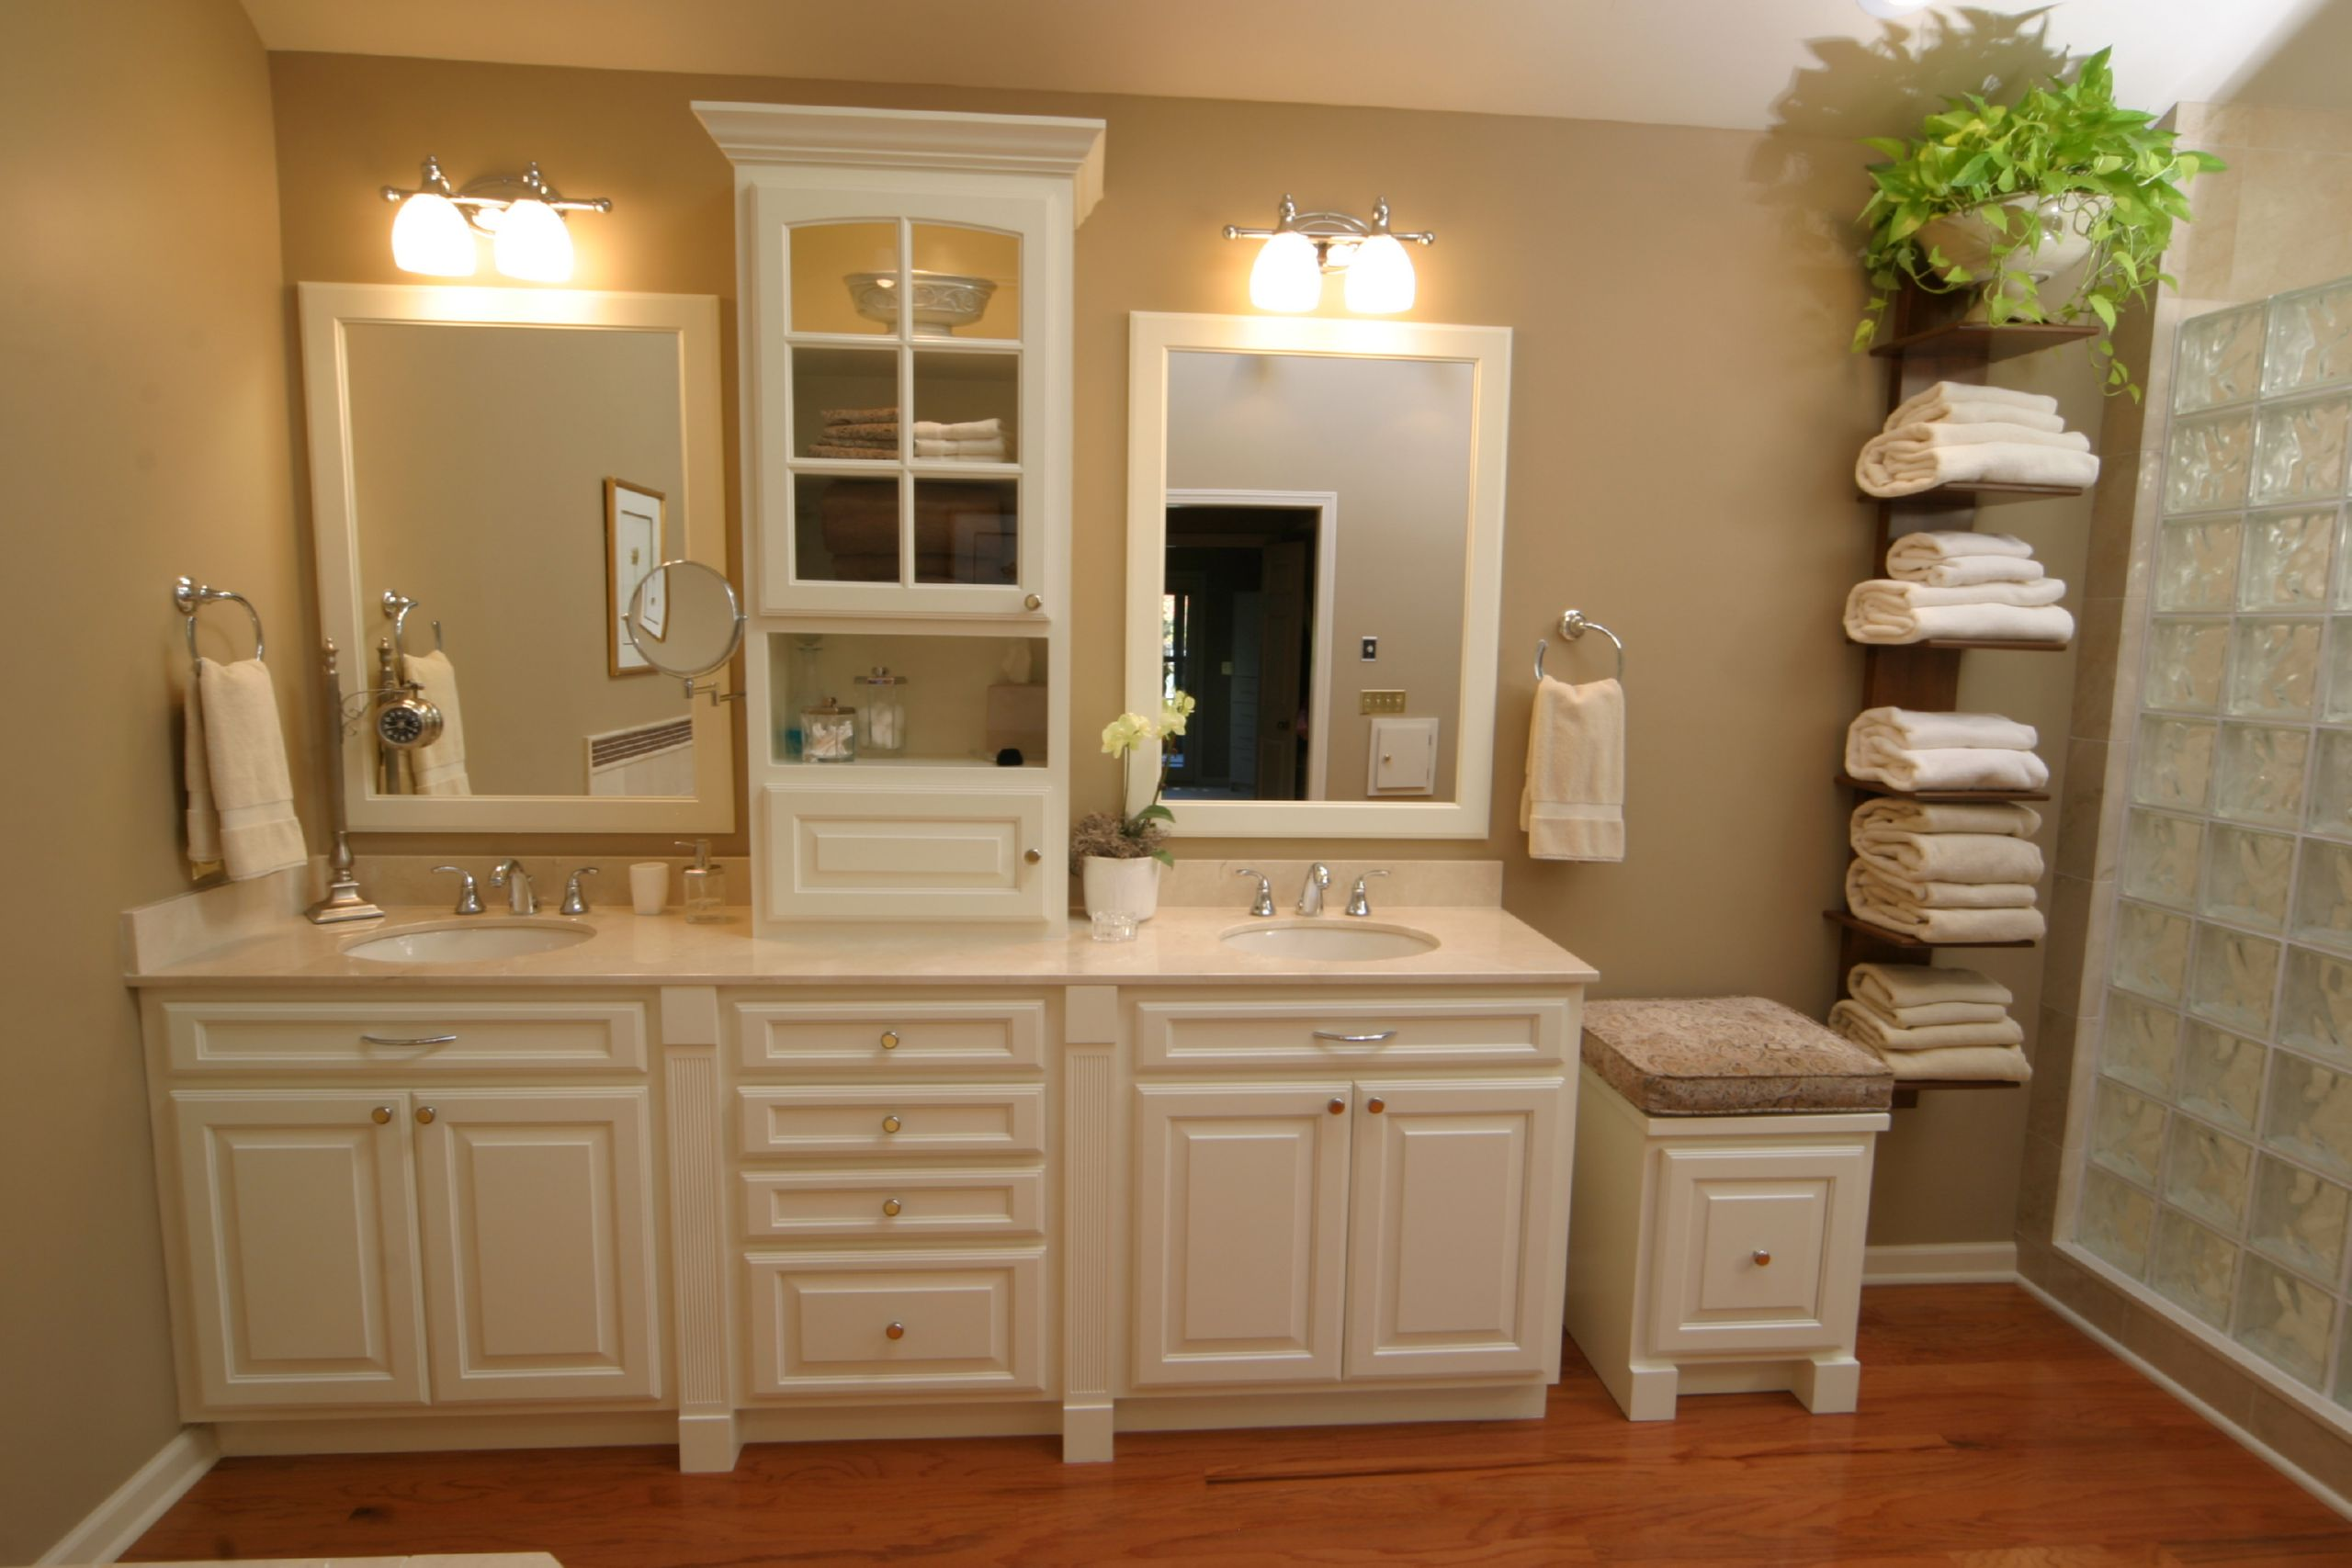 Bathroom remodeling tips njw construction for Bathroom remodel images